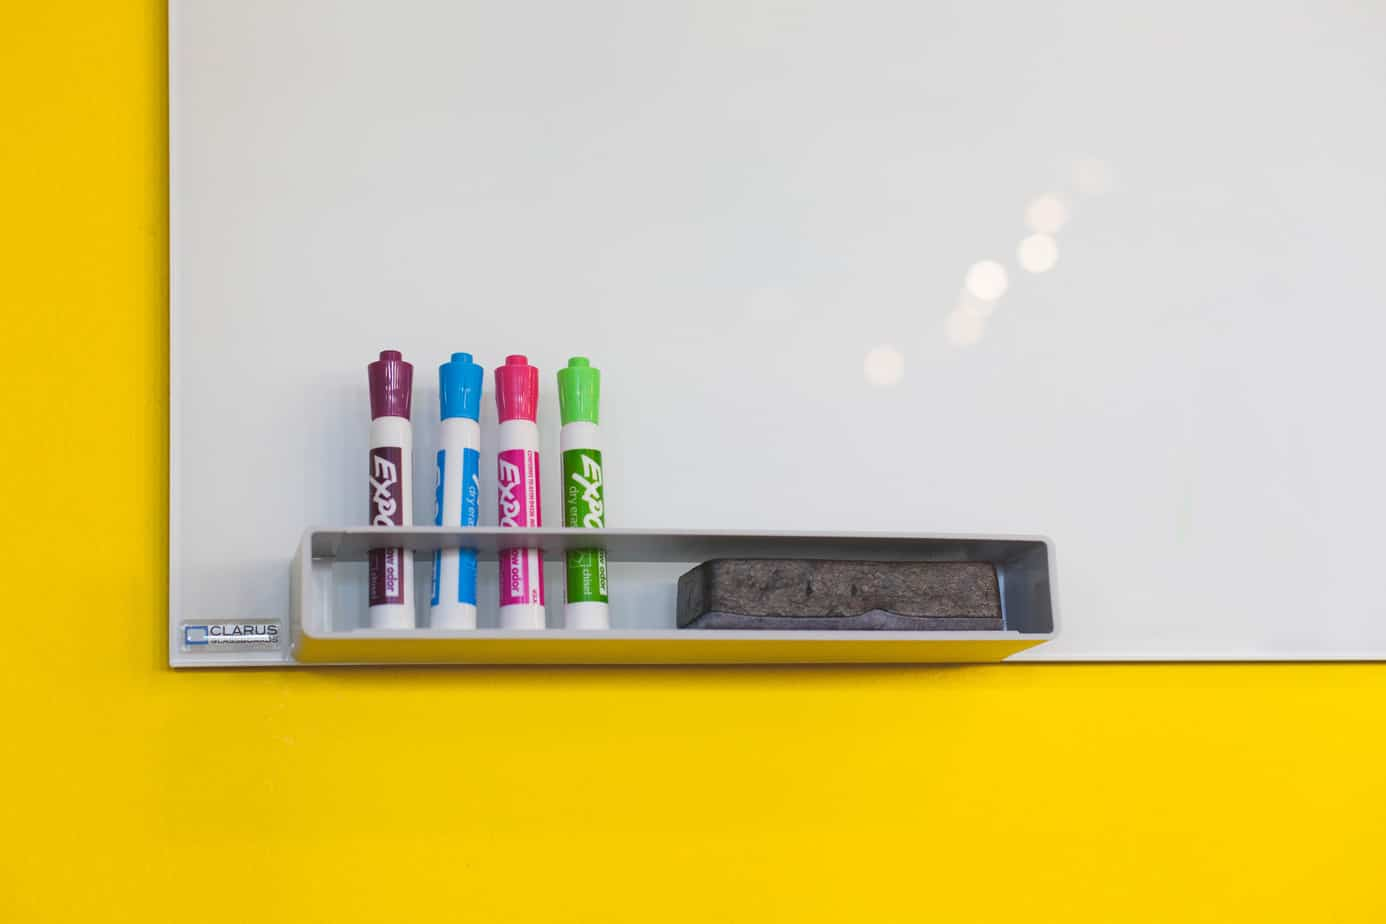 How To Organize Your Home Office Desk